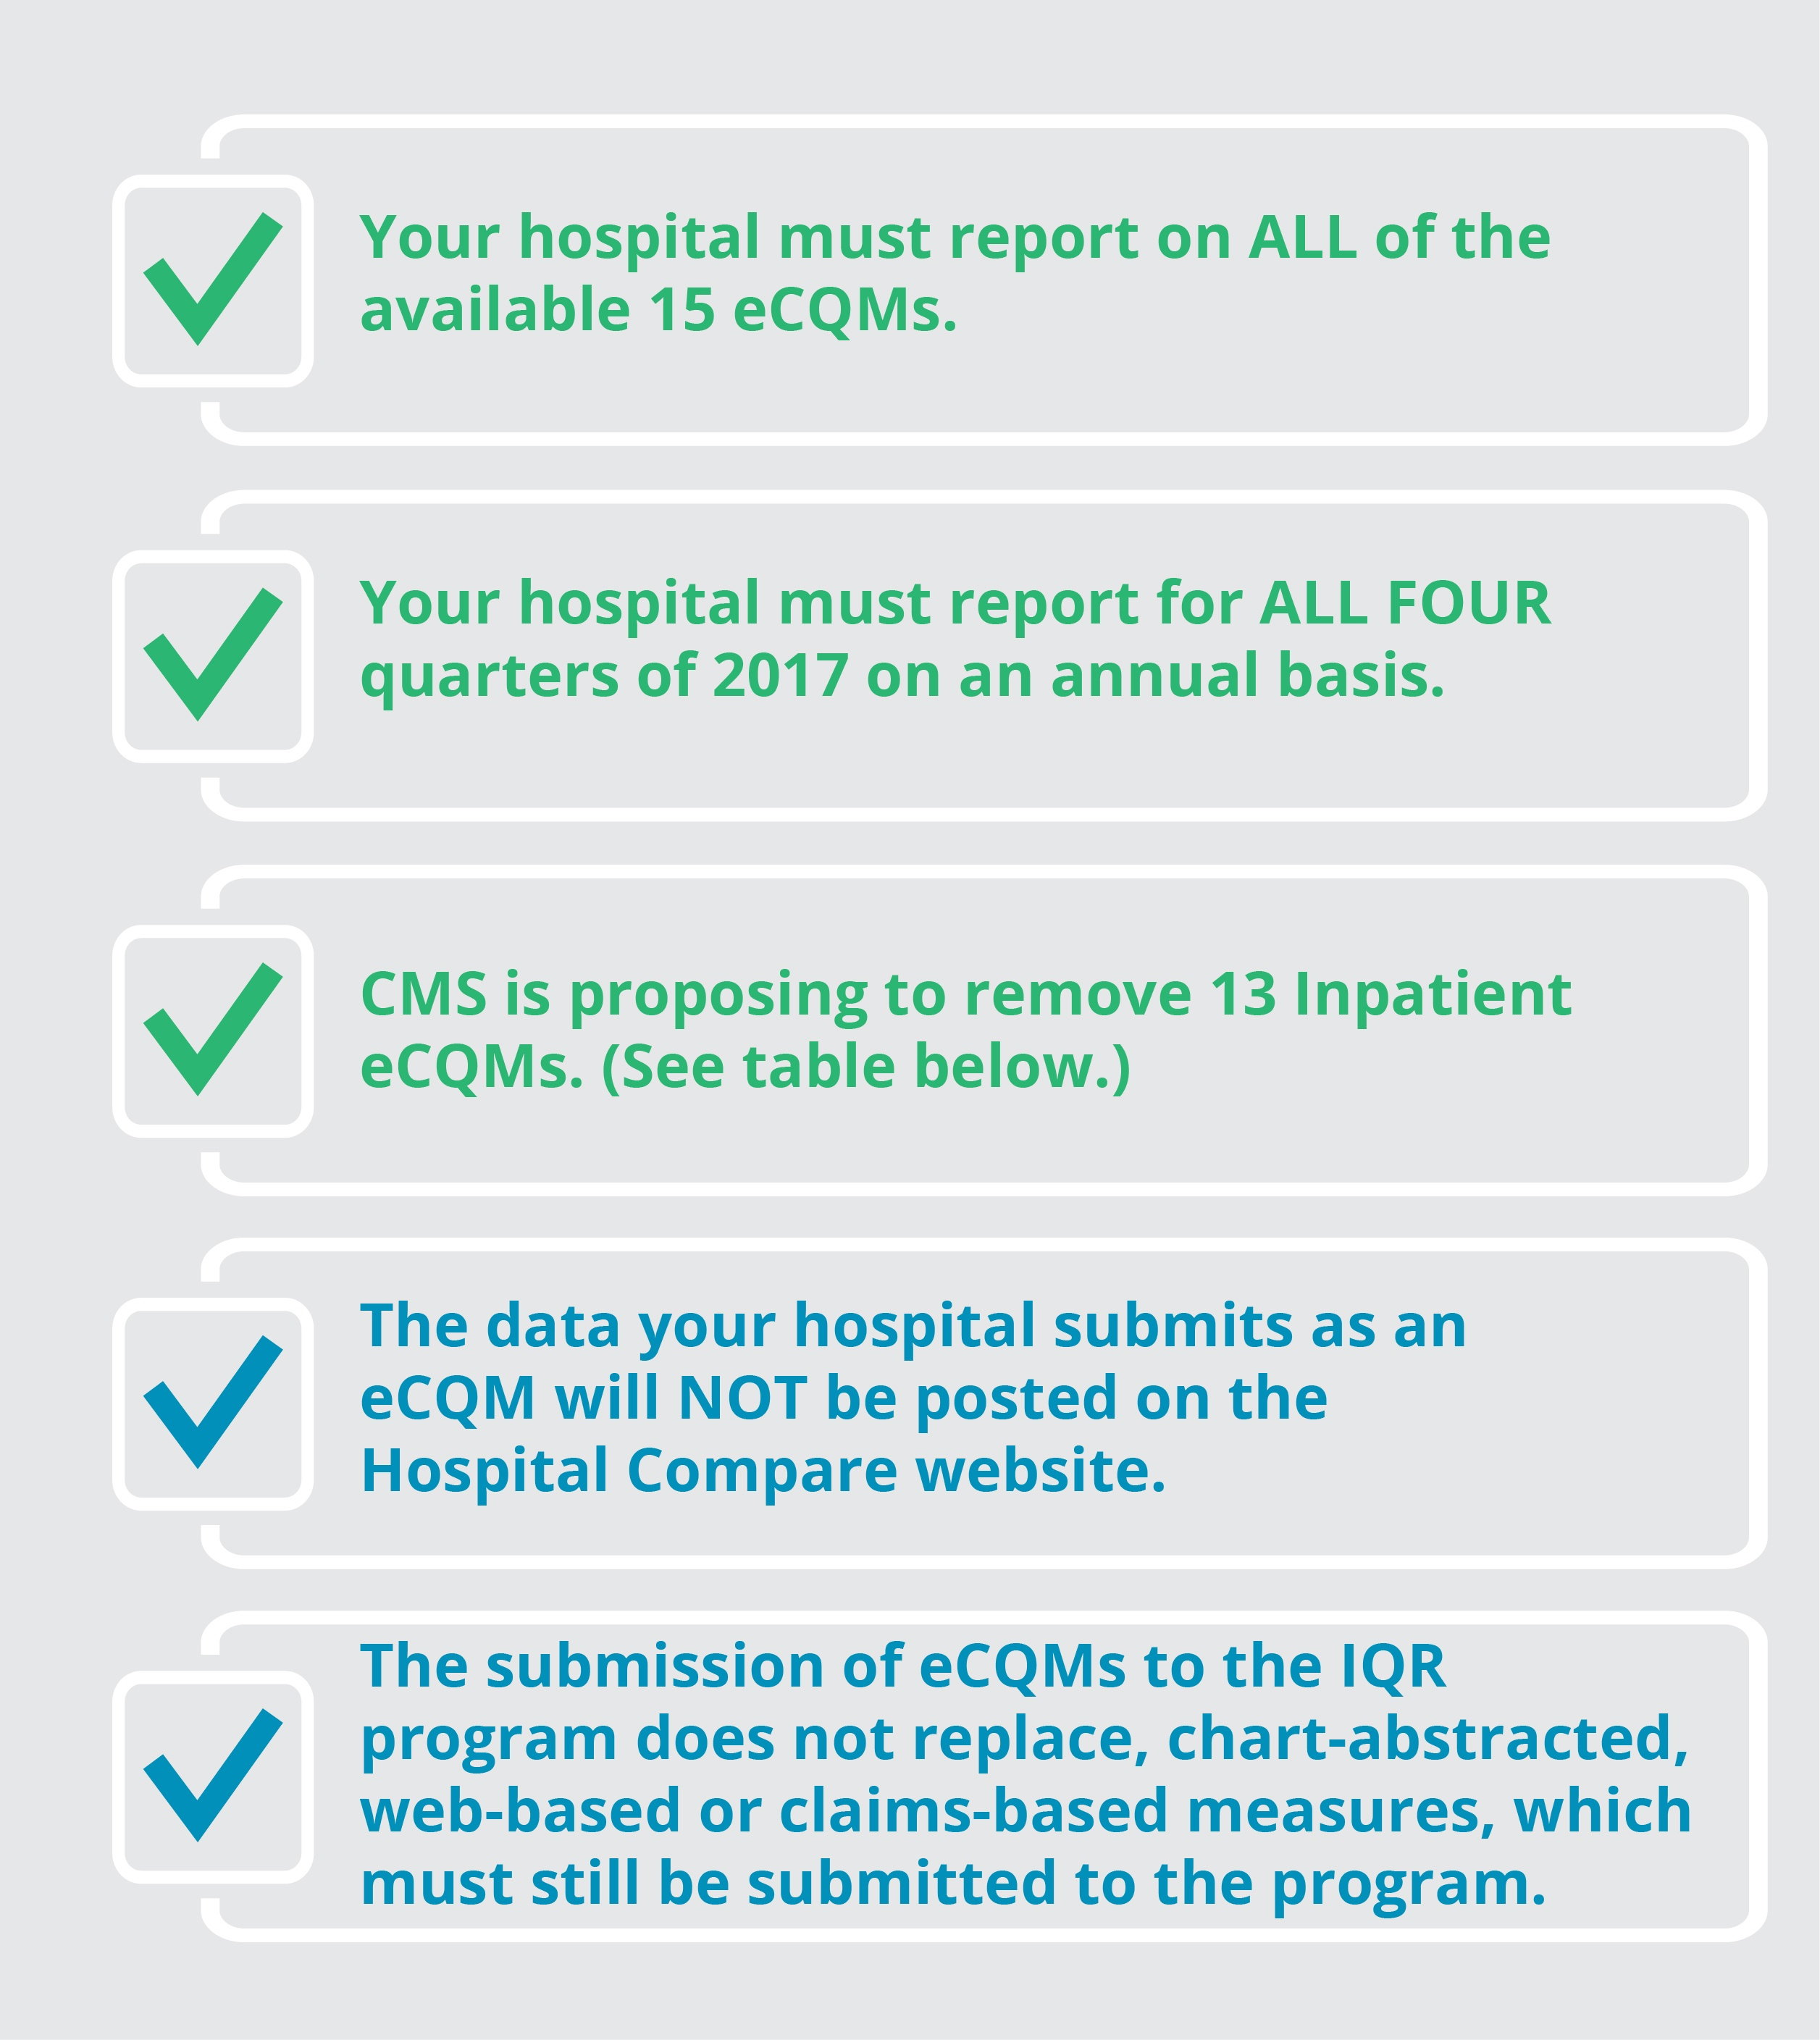 2017-IQR-eCQM-Requirements-02-1.jpg